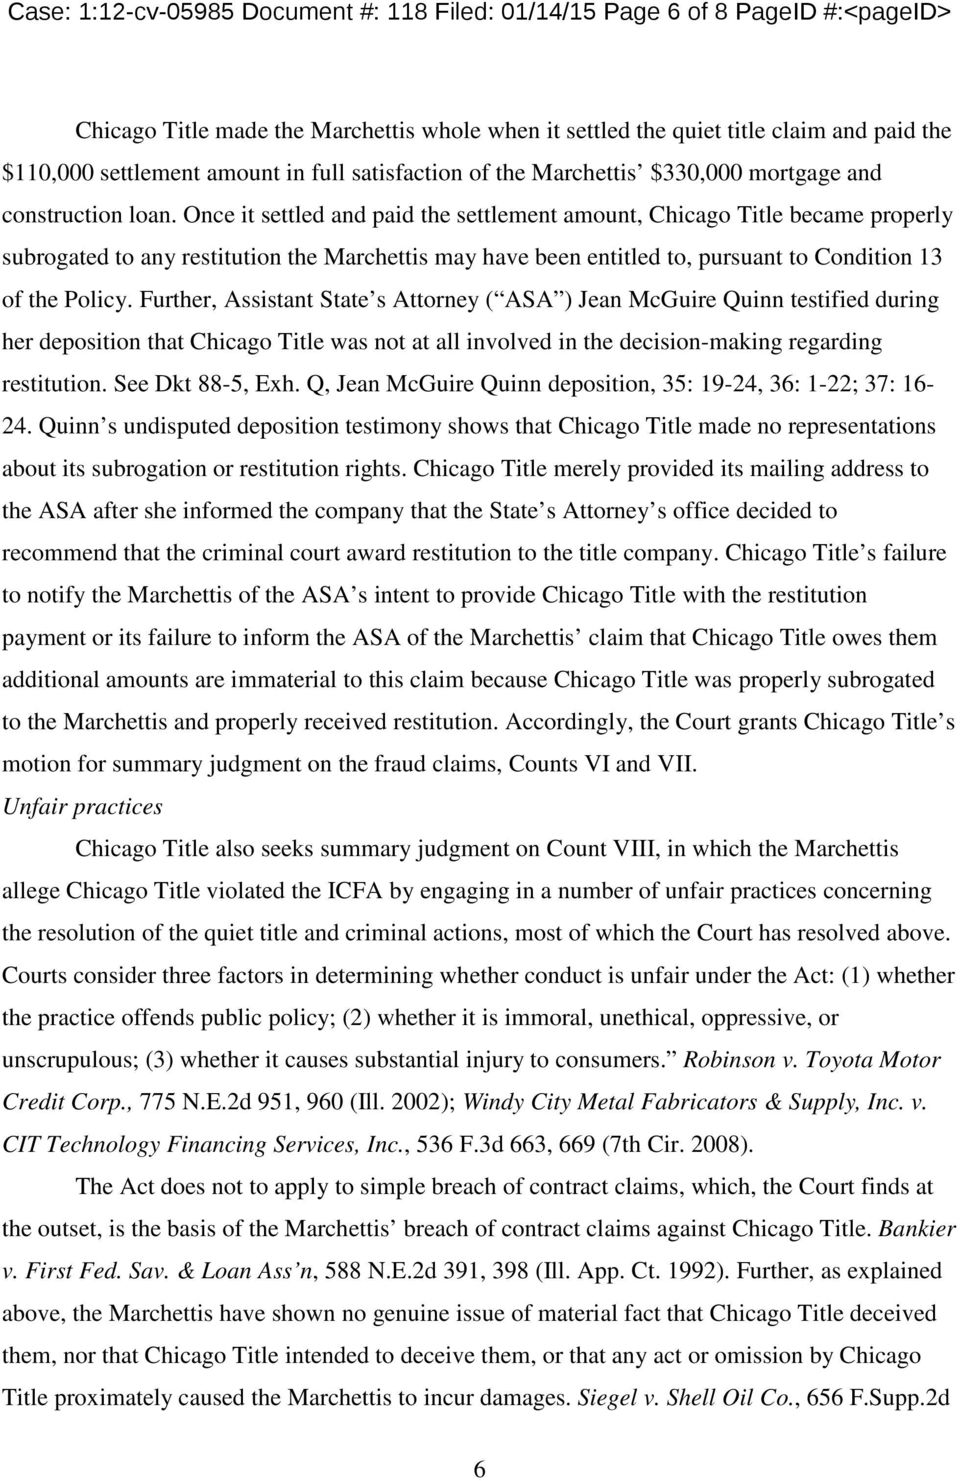 Once it settled and paid the settlement amount, Chicago Title became properly subrogated to any restitution the Marchettis may have been entitled to, pursuant to Condition 13 of the Policy.